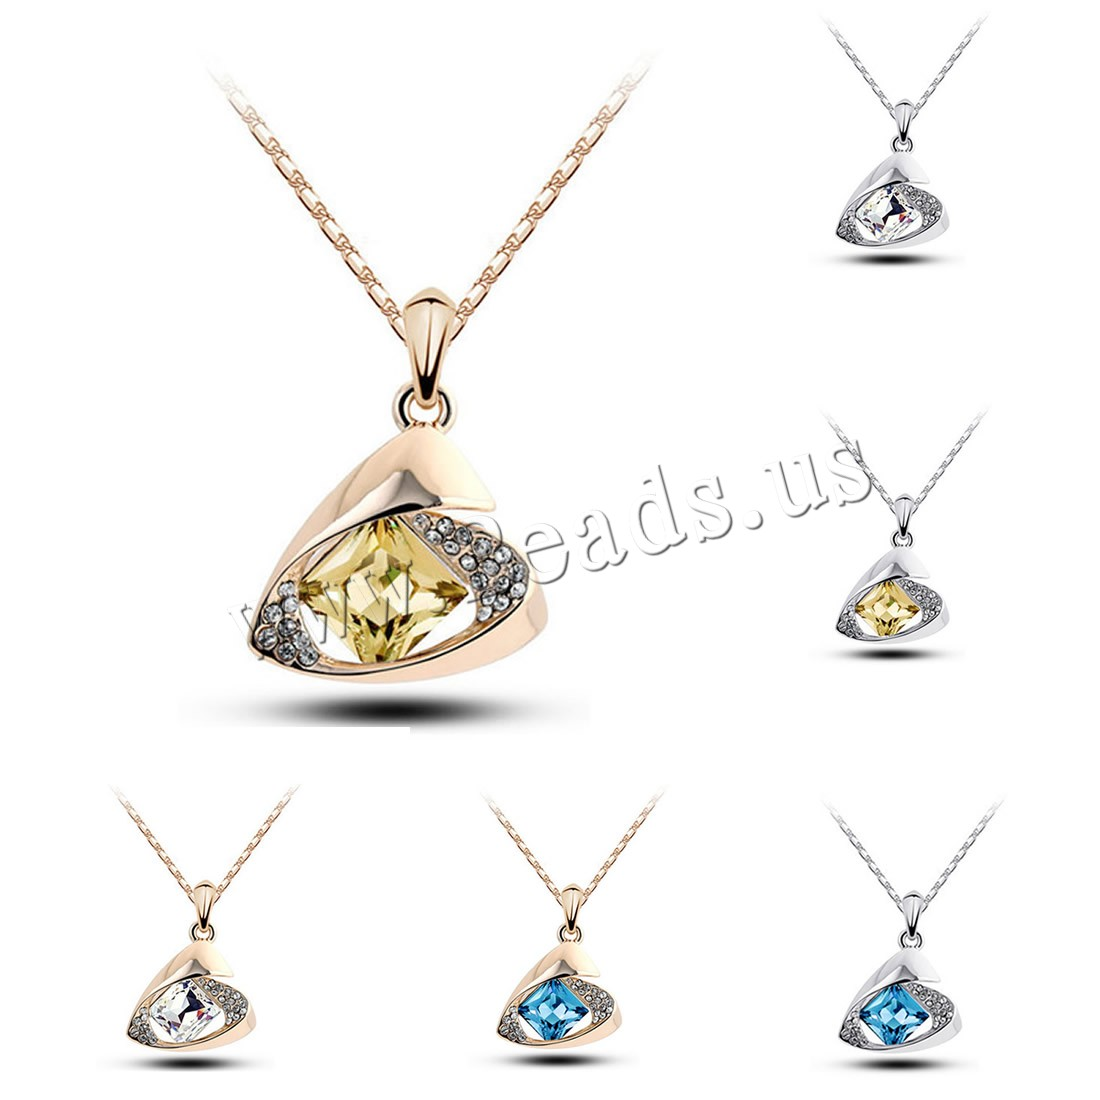 Buy Crystal Zinc Alloy Necklace iron chain & Crystal 5cm extender chain plated bar chain & woman & faceted & rhinestone colors choice lead & cadmium free 24x26mm Sold Per Approx 15.5 Inch Strand